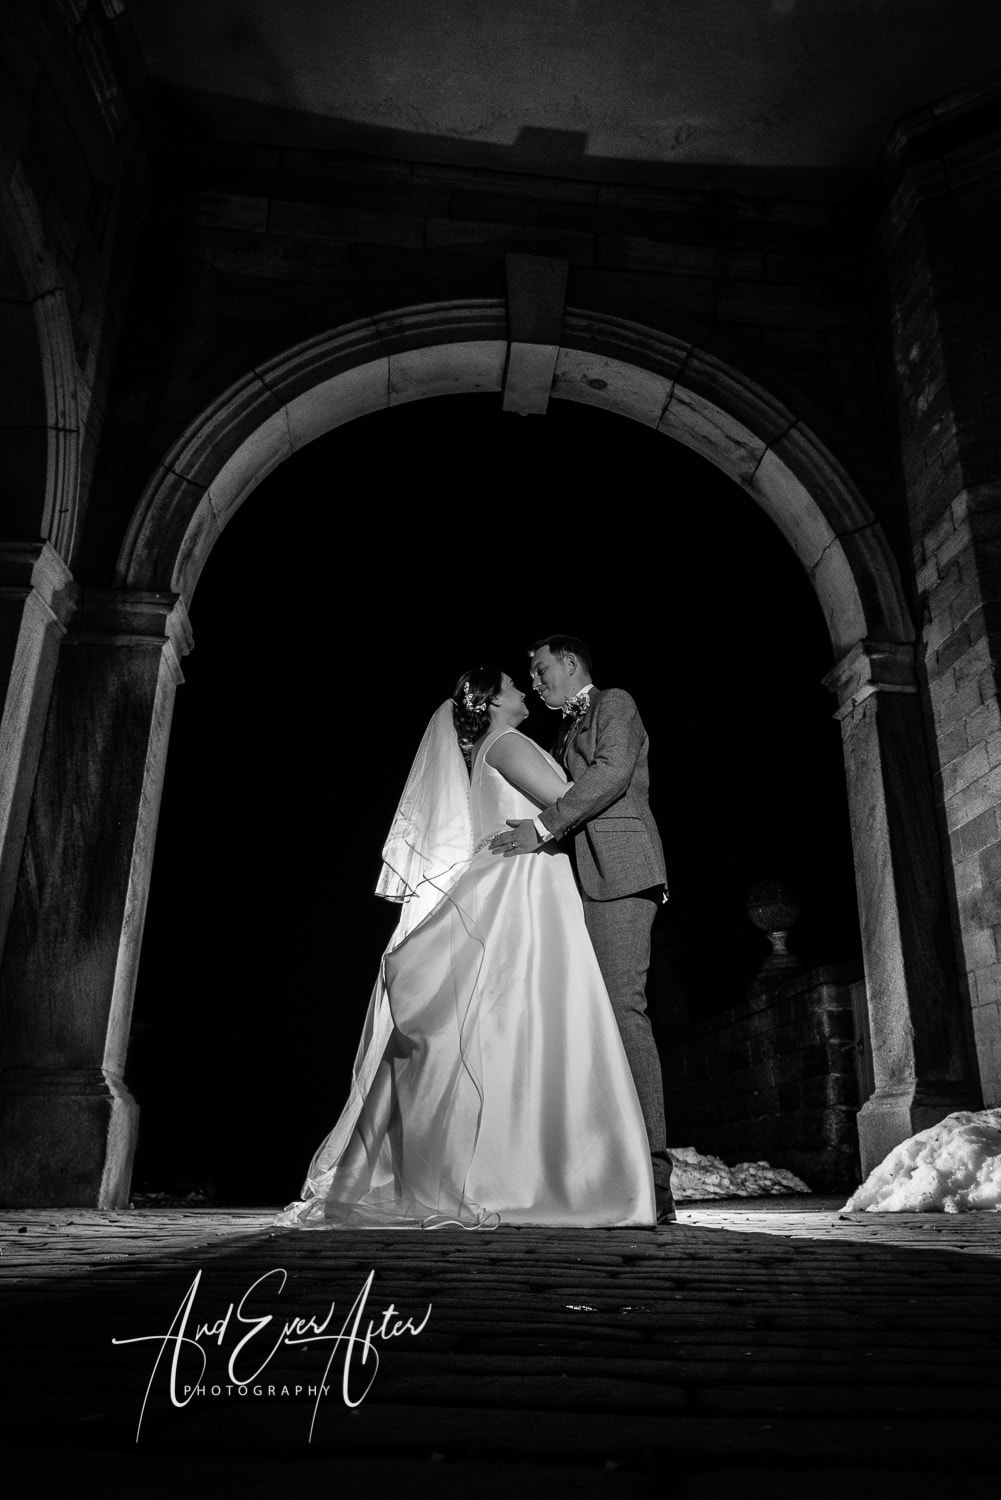 lartington hall wedding photography, bride and groom creative photography, wow shots